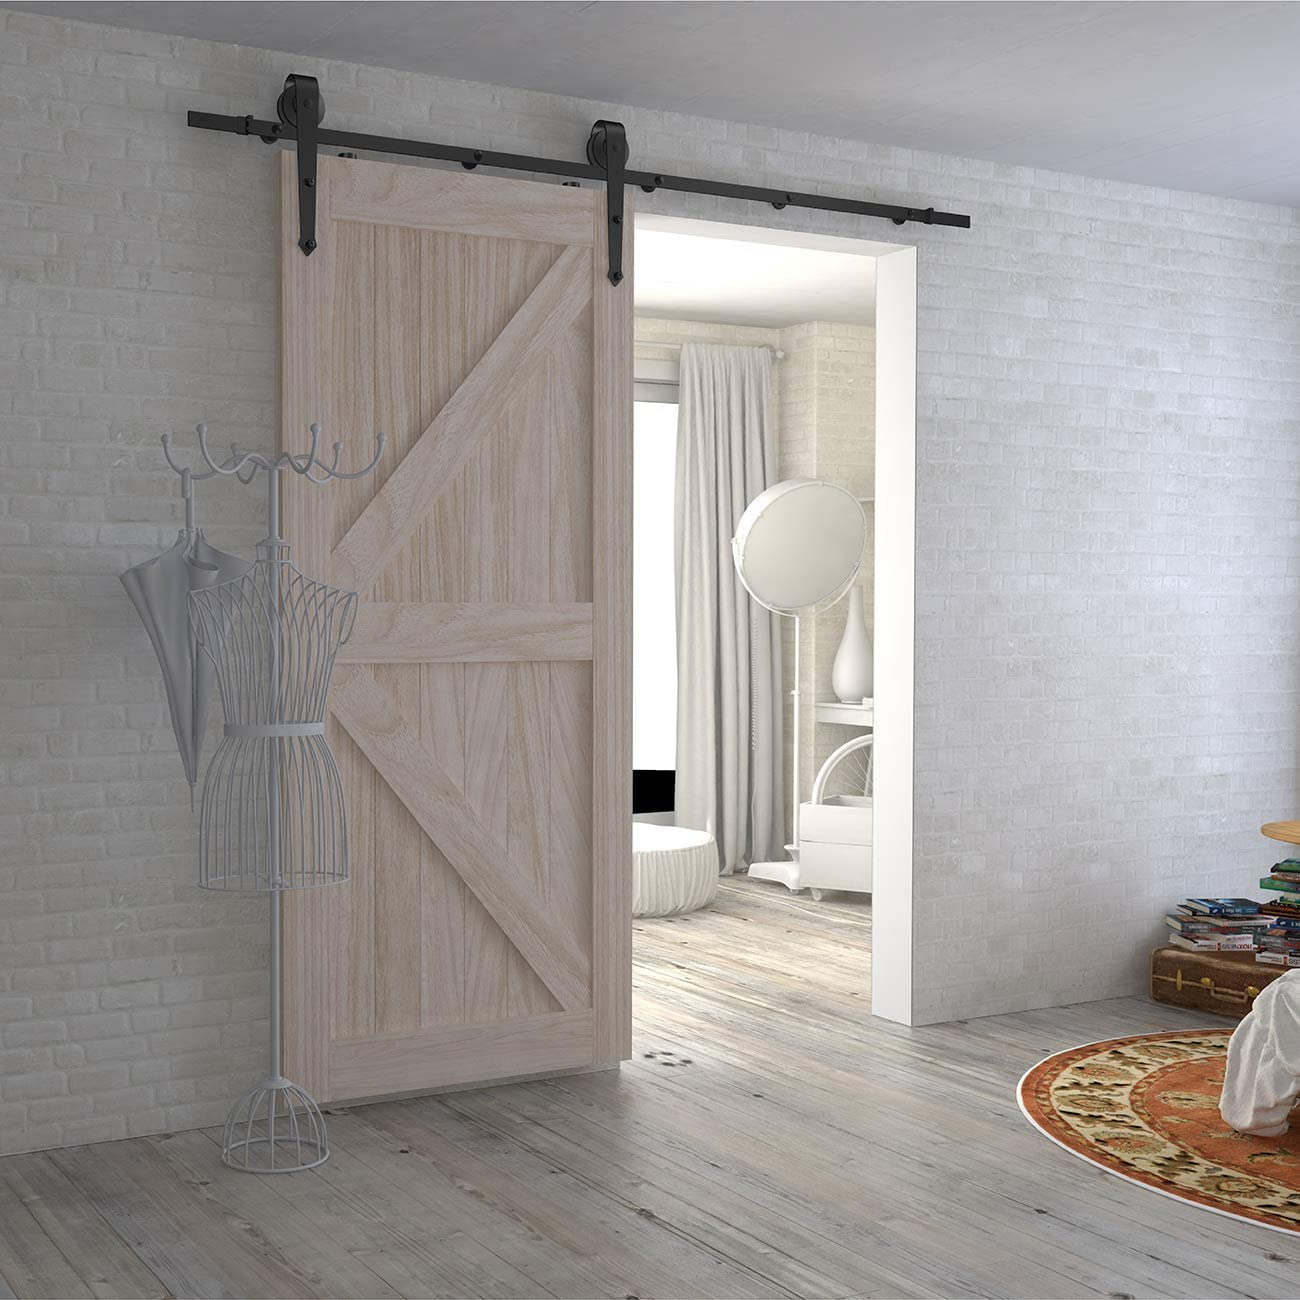 Smoothly and Quietly Easy Installation,Arrow Shape Hanger Classical Designing 5Foot Sliding Barn Door Hardware Kit Fit for 30 Wide Door Panel